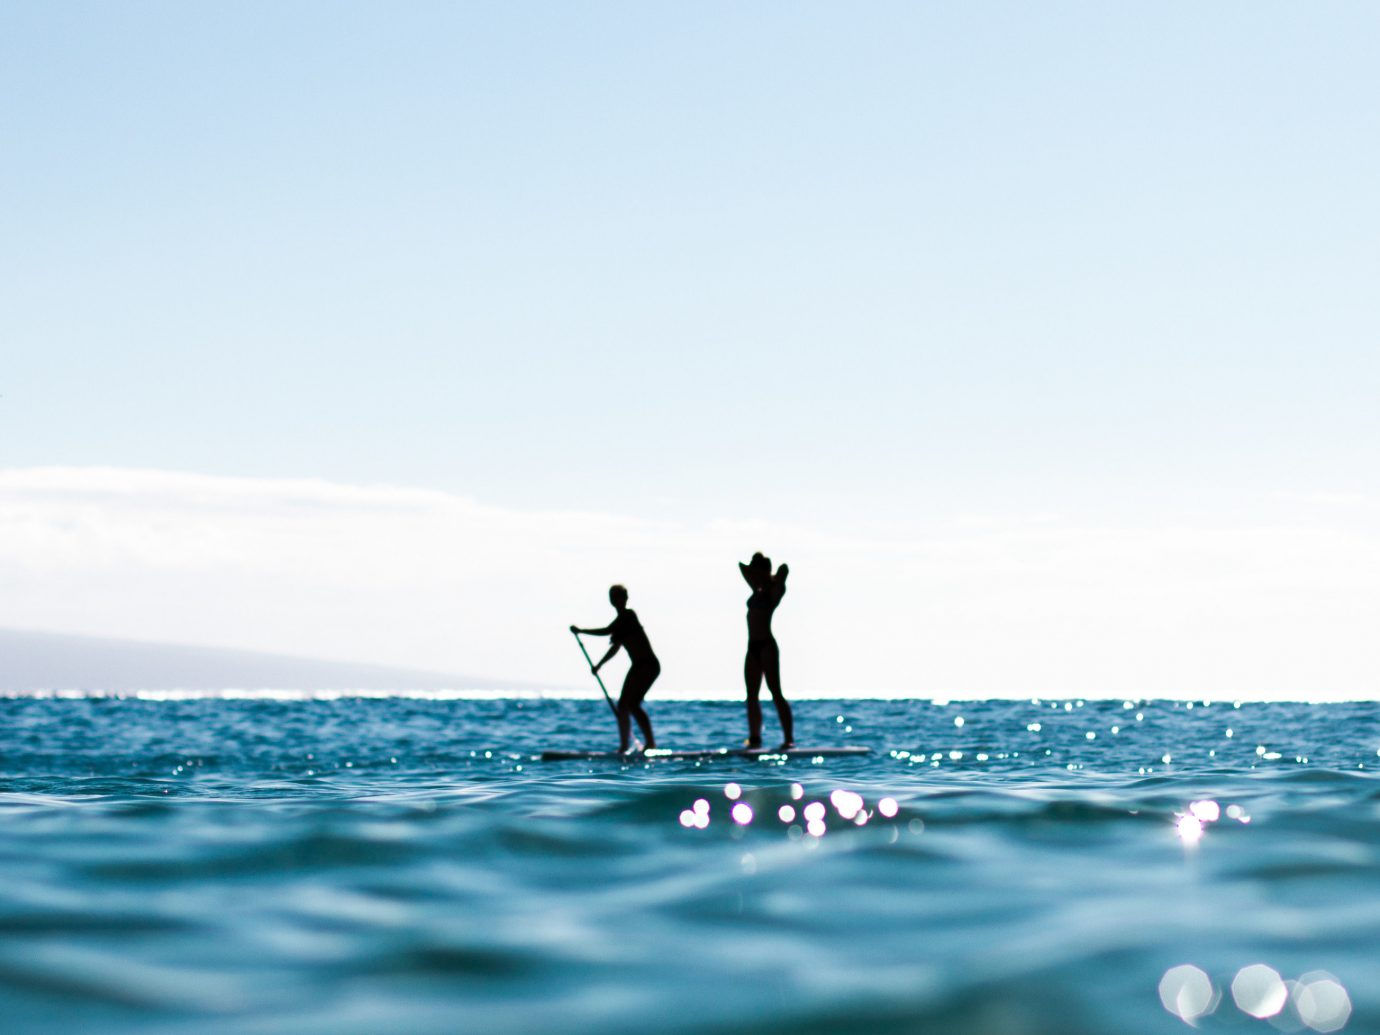 Beach sky water outdoor surfing sailing Sea Ocean water sport horizon wind wave sports boating wave windsurfing surfing equipment and supplies surfboard wind paddle surface water sports boardsport